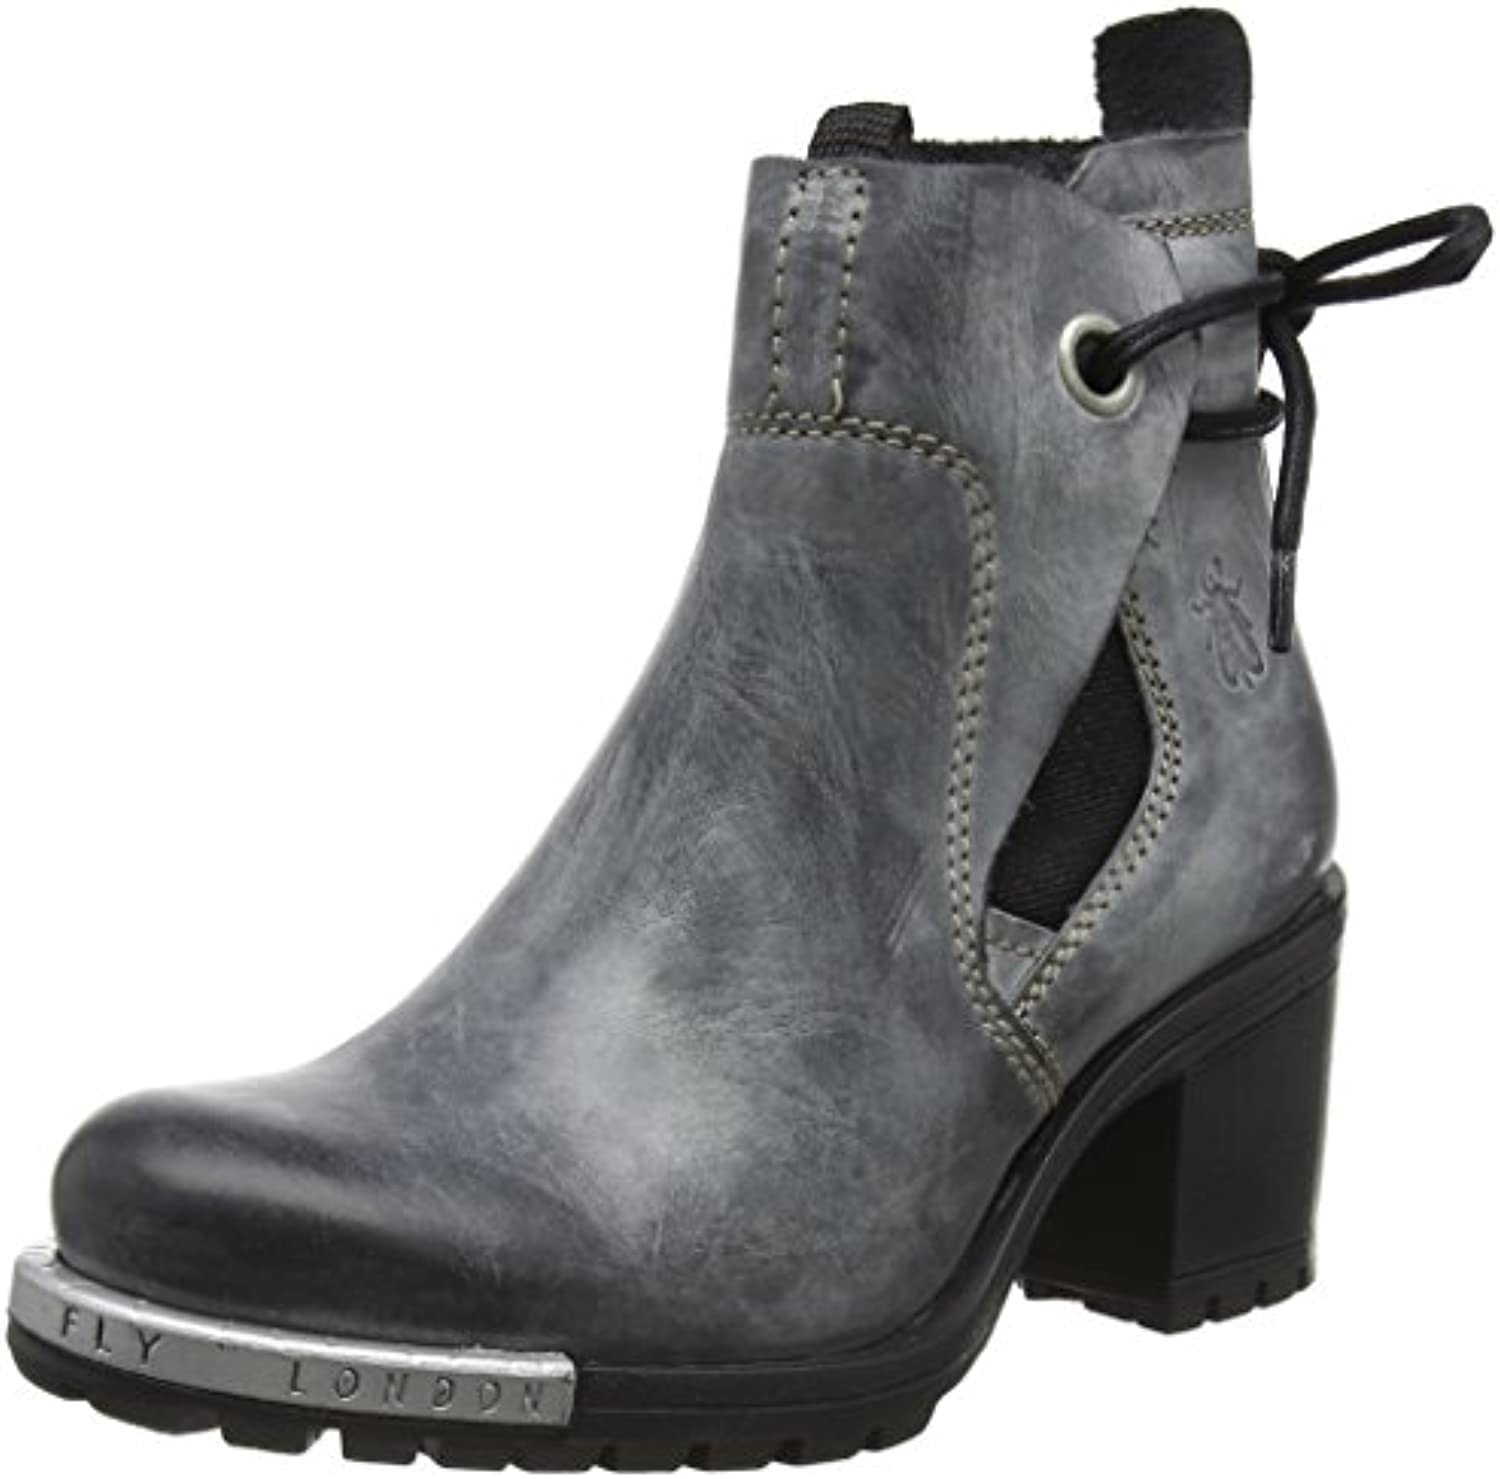 Fly London Luxe046fly, Botas para Mujer